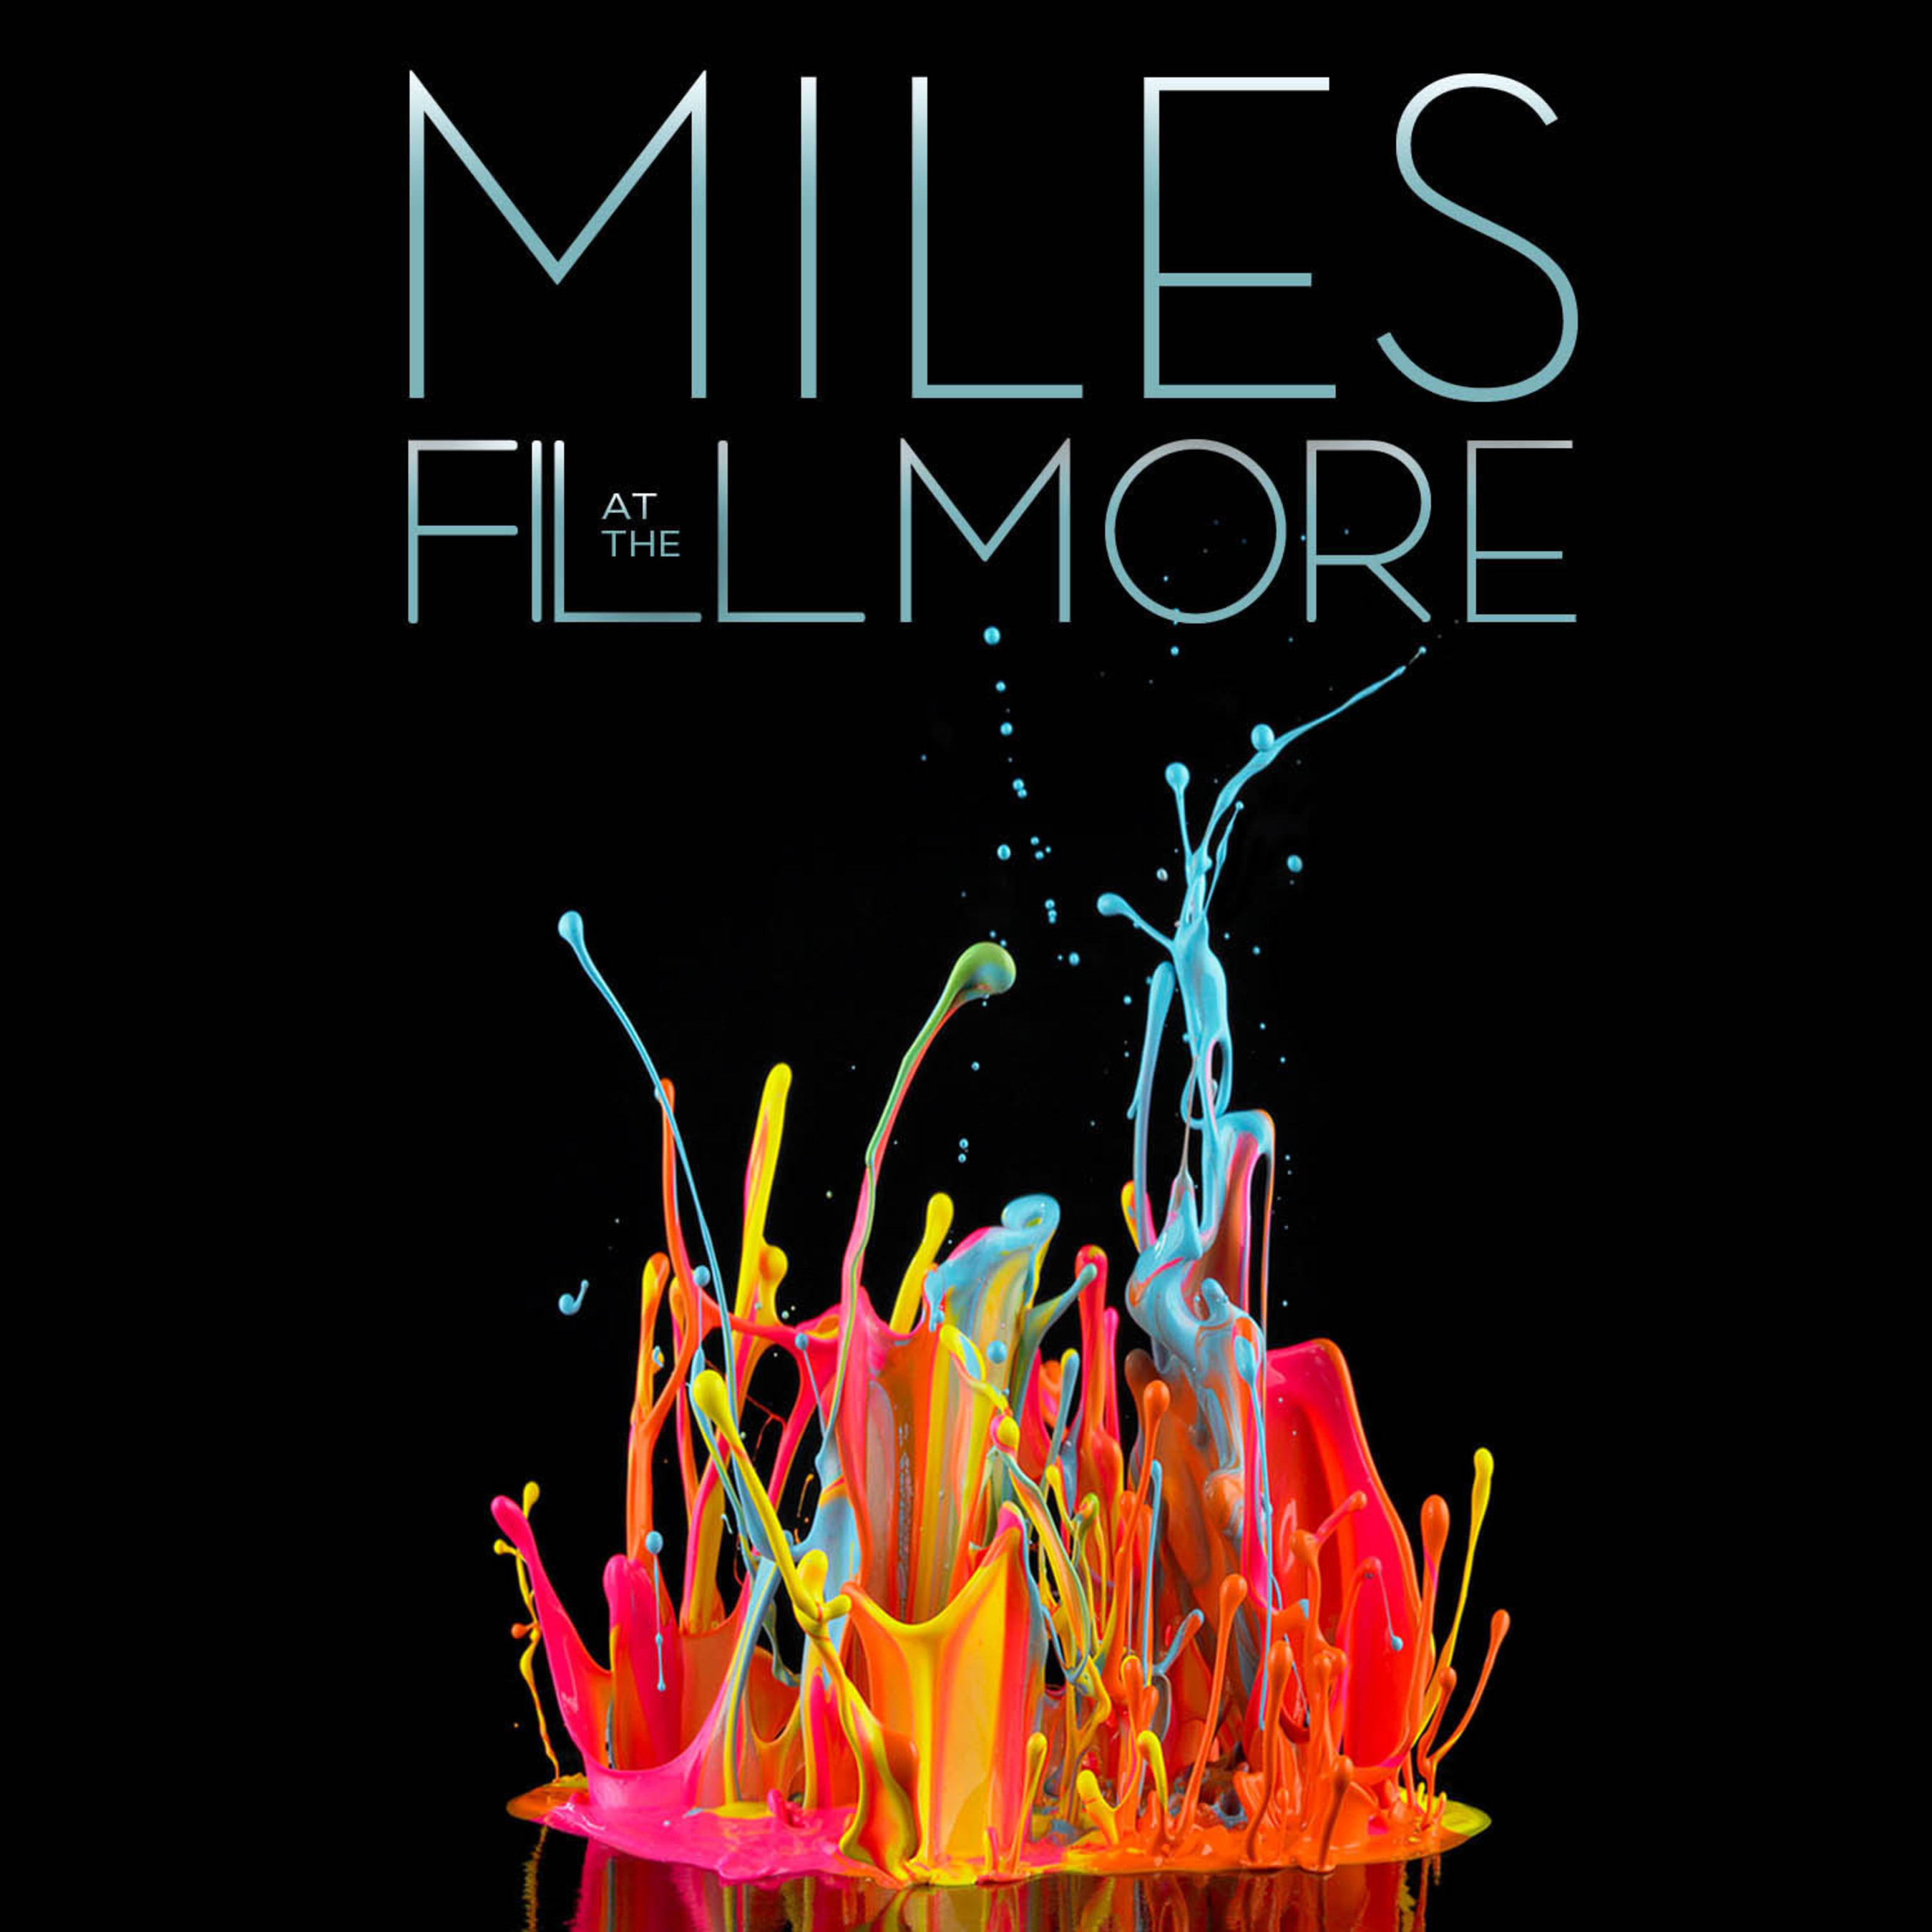 """""""MILES AT THE FILLMORE - Miles Davis 1970: The Bootleg Series Vol. 3"""" to be released March 25, 2014. (PRNewsFoto/Legacy Recordings) (PRNewsFoto/LEGACY RECORDINGS)"""